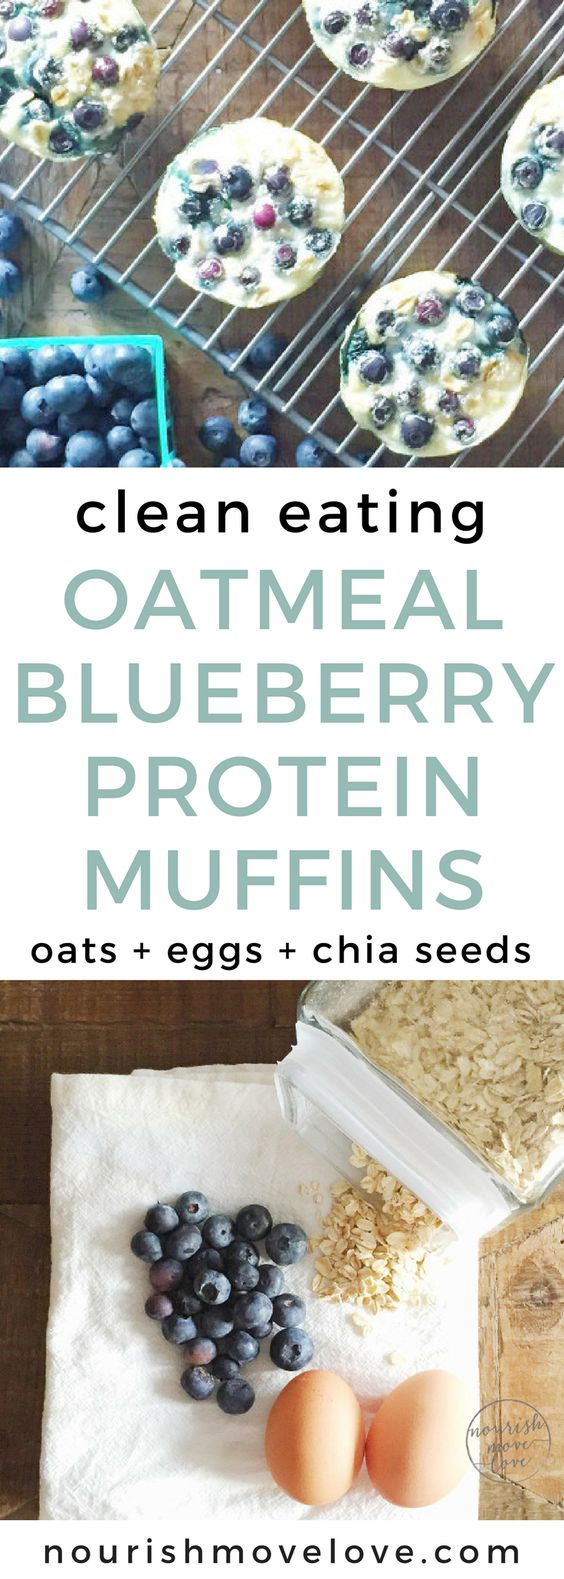 Blueberry Egg And Oat Muffins